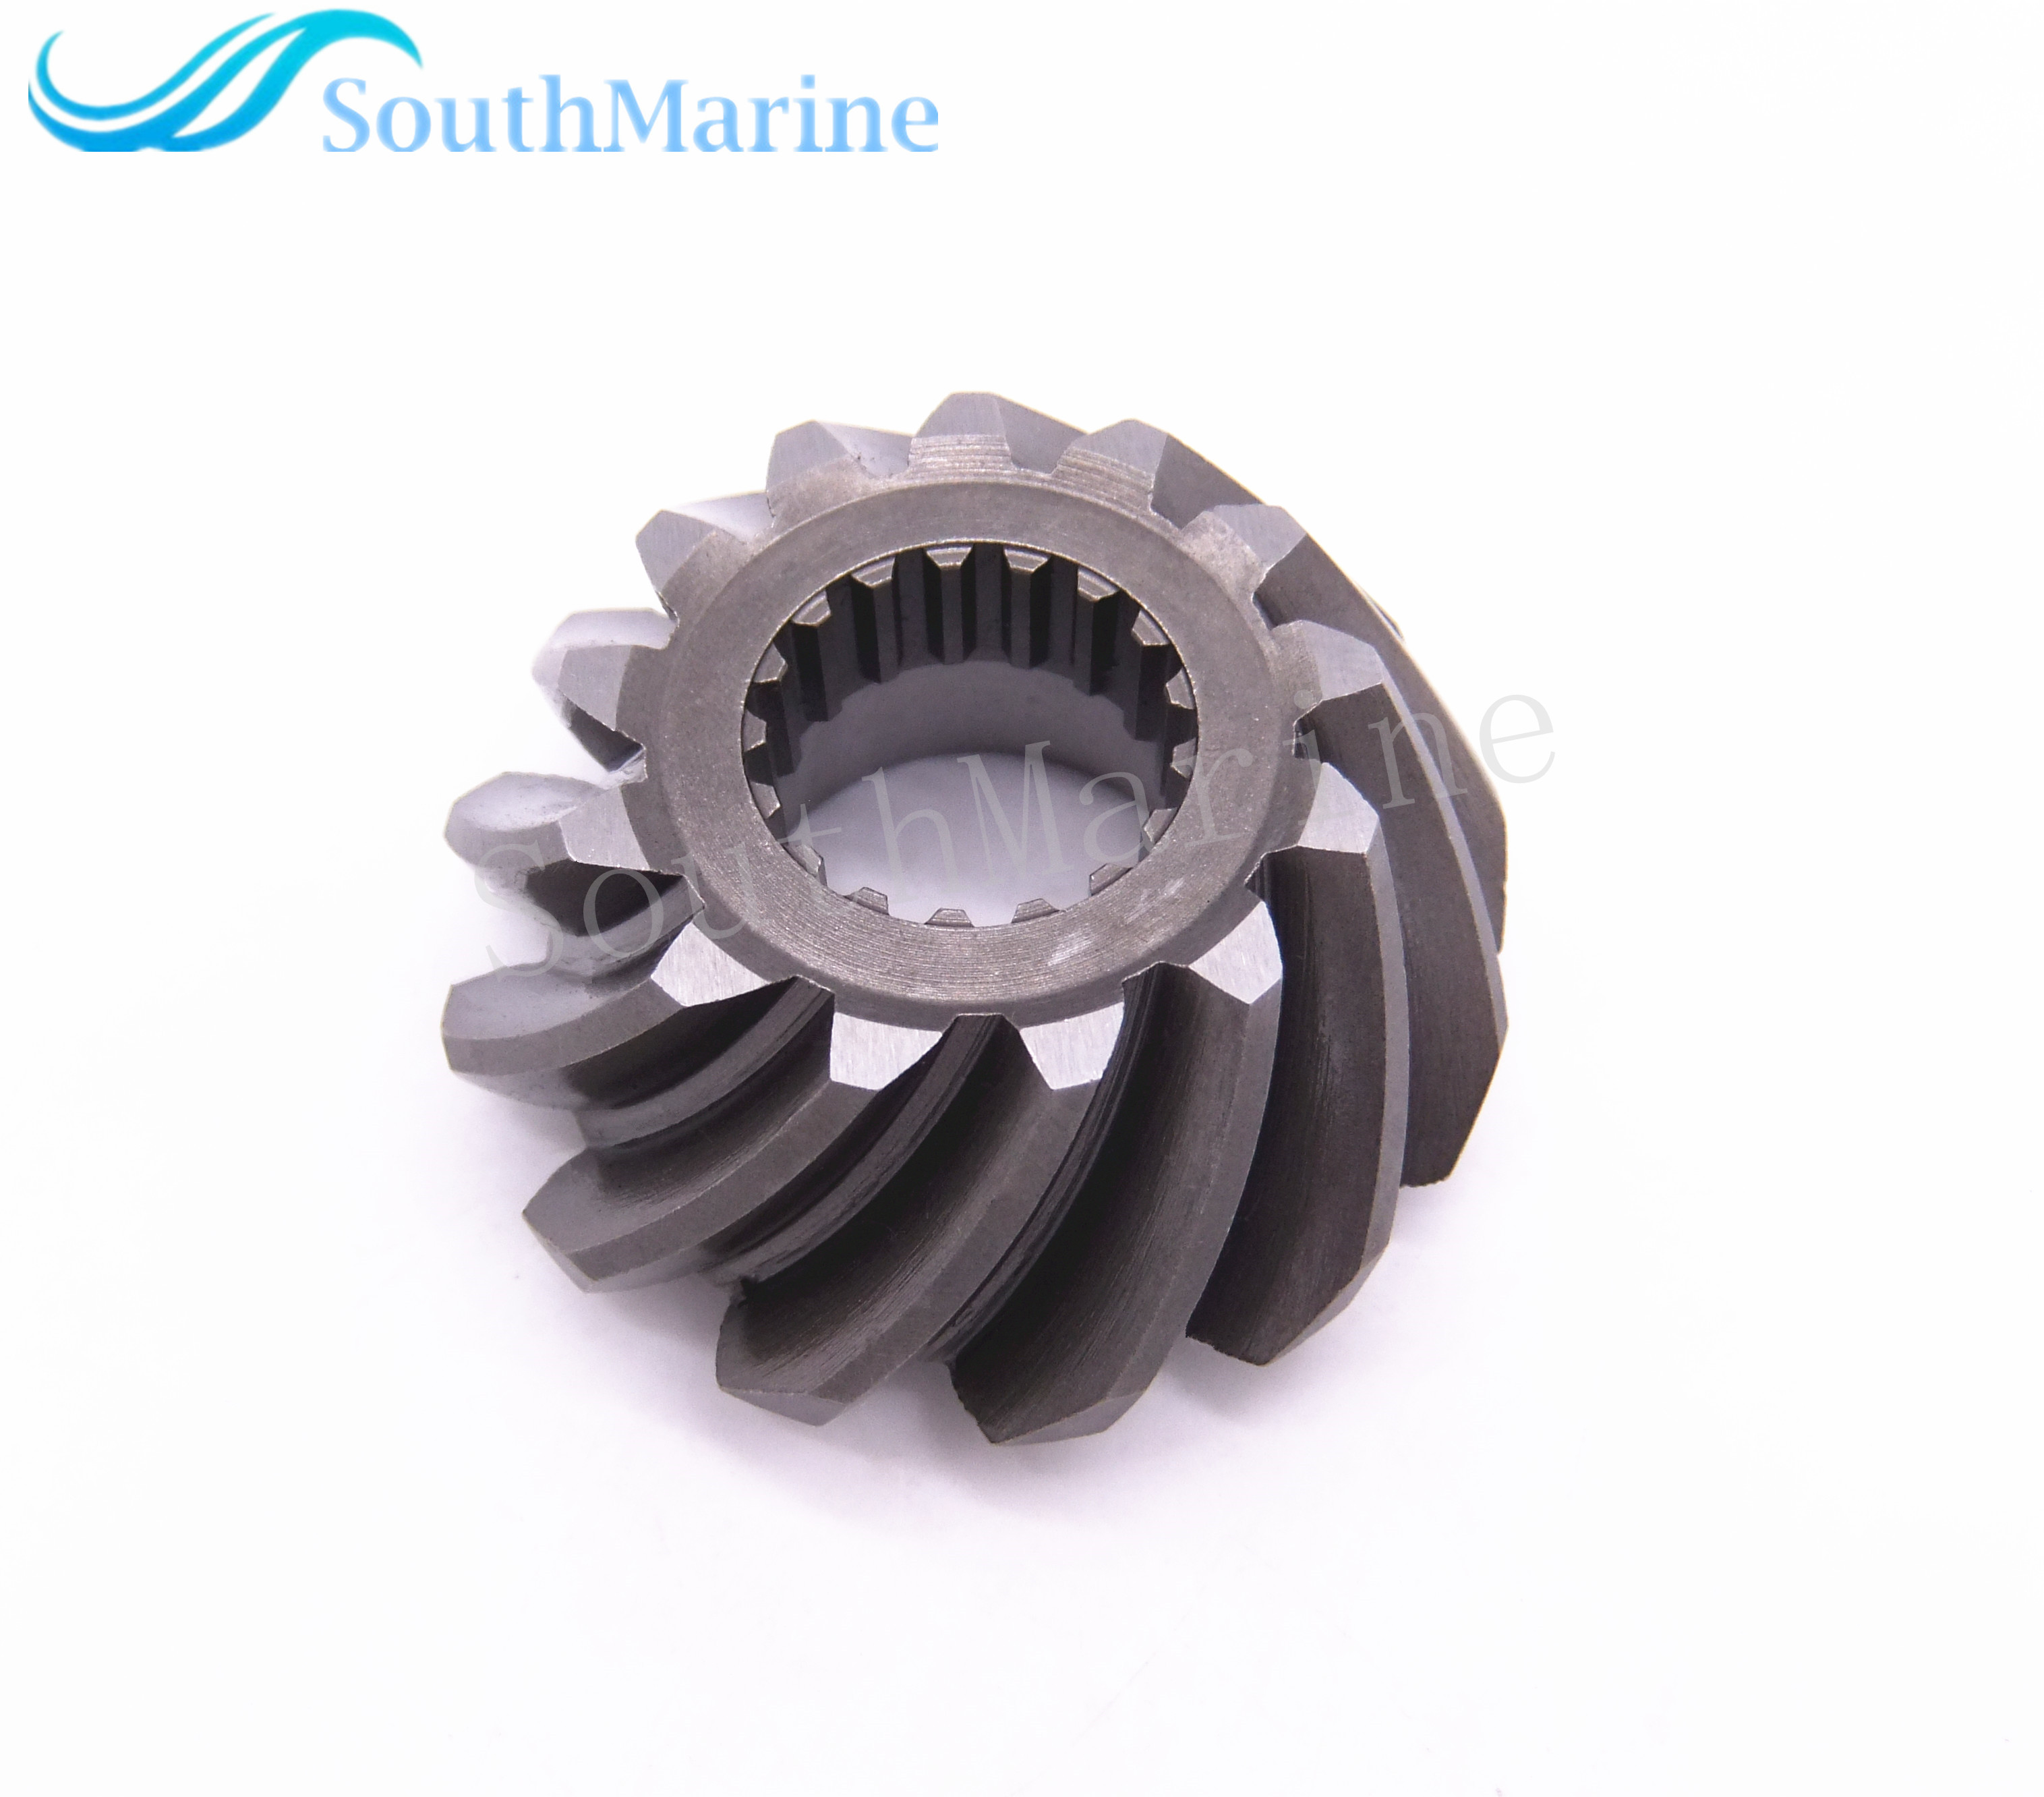 Automobiles & Motorcycles Atv,rv,boat & Other Vehicle T85-04000605 Pinion Gear For Parsun Hdx Outboard Engine 2-stroke T75 T85 T90 Boat Motor Neither Too Hard Nor Too Soft